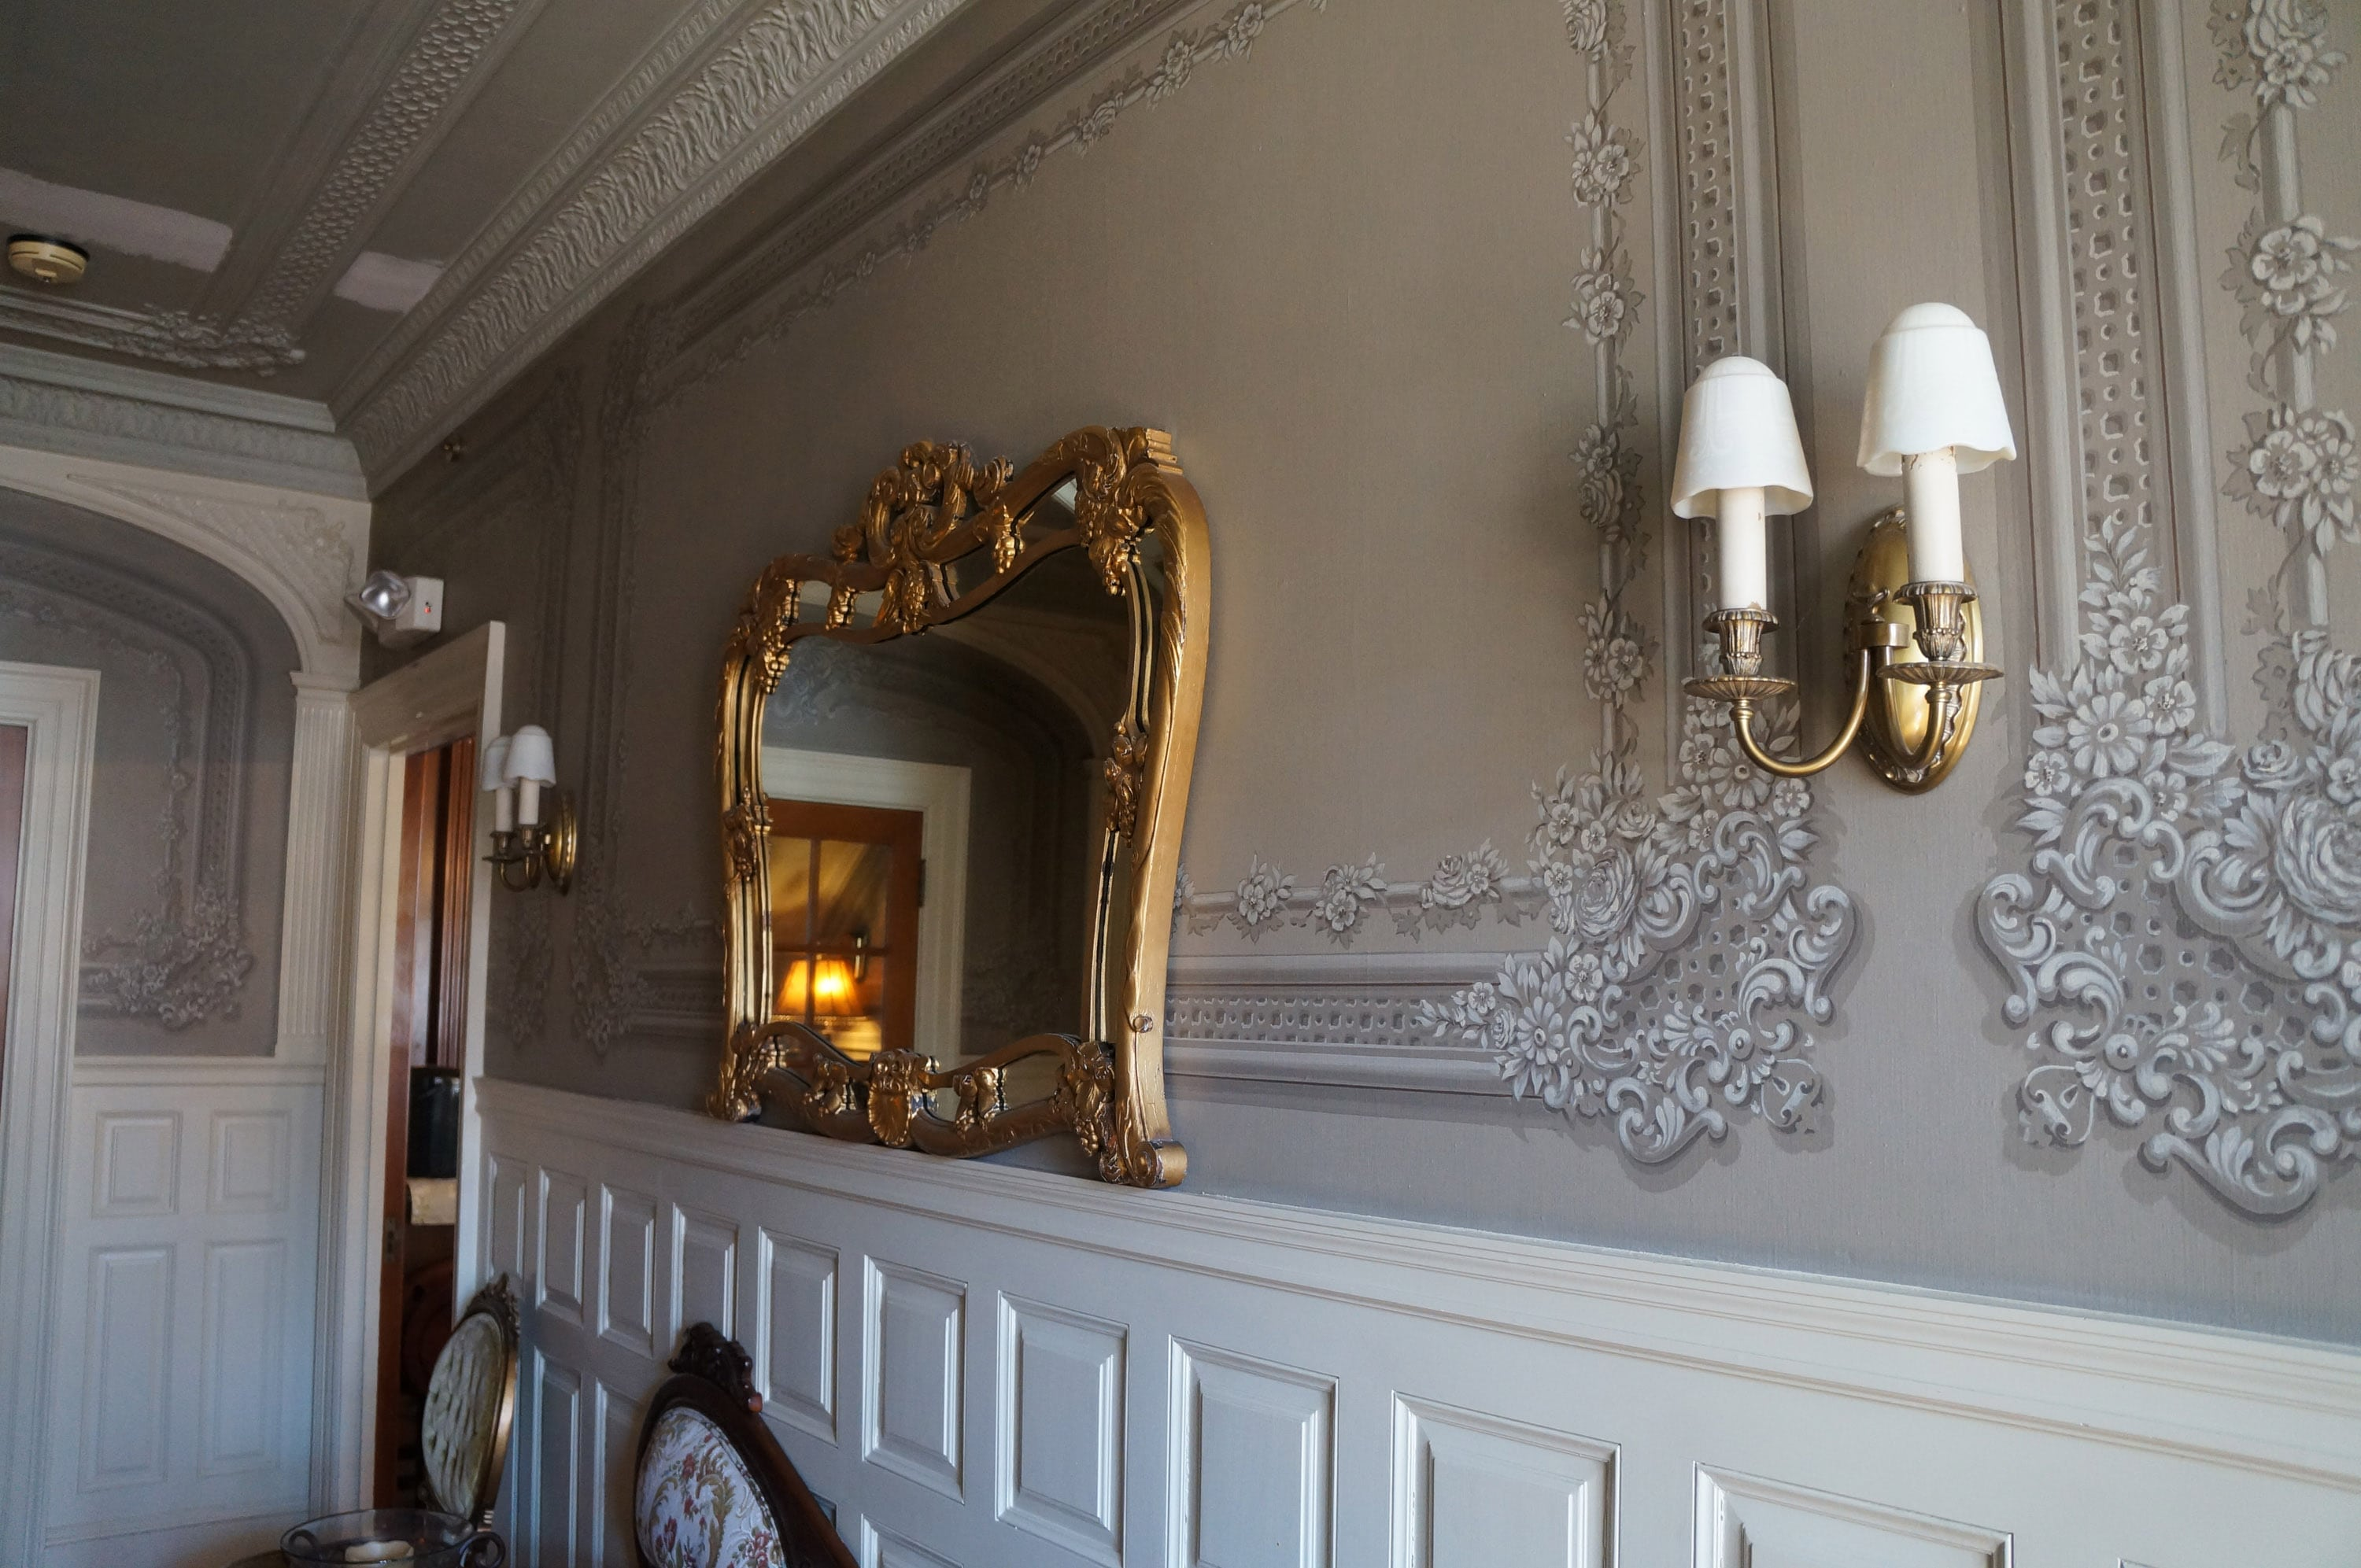 Here is a view of the beautiful victorian moldings on our wall in our durham nh hotel. There is a large gold mirror on the wall in between two golf wall lamps.